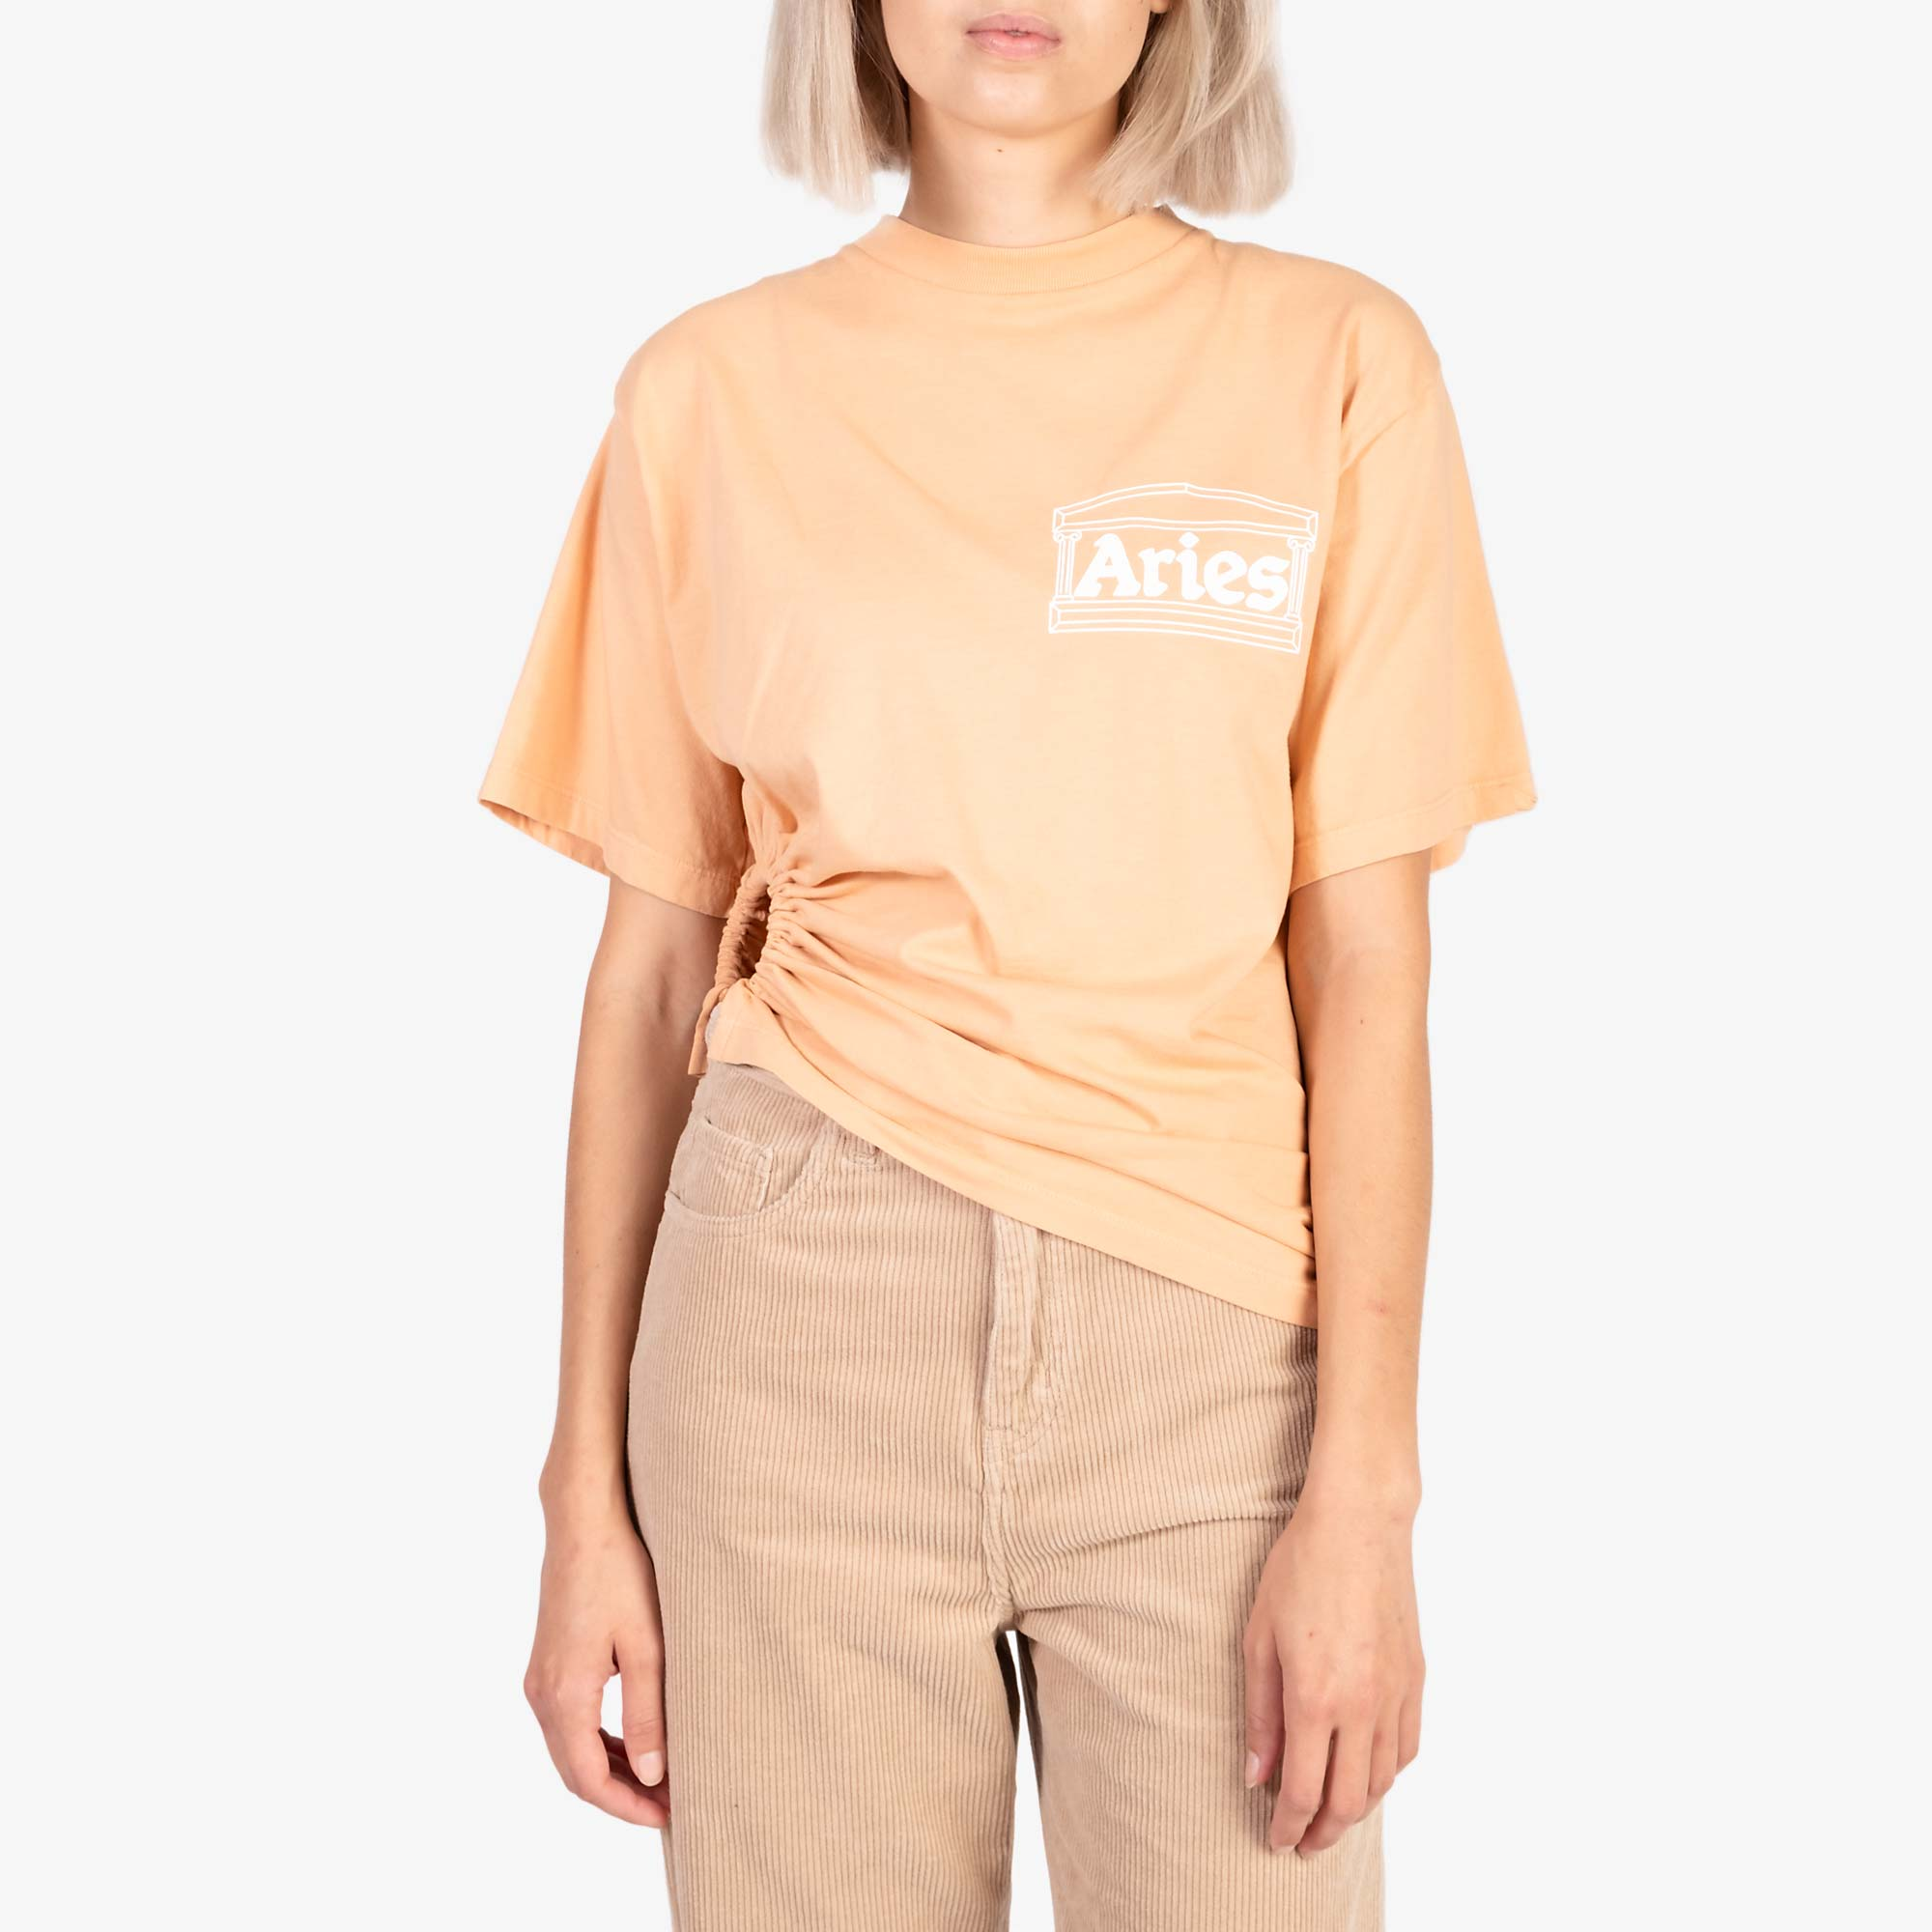 Aries Women's Ring Tee - Peach 2